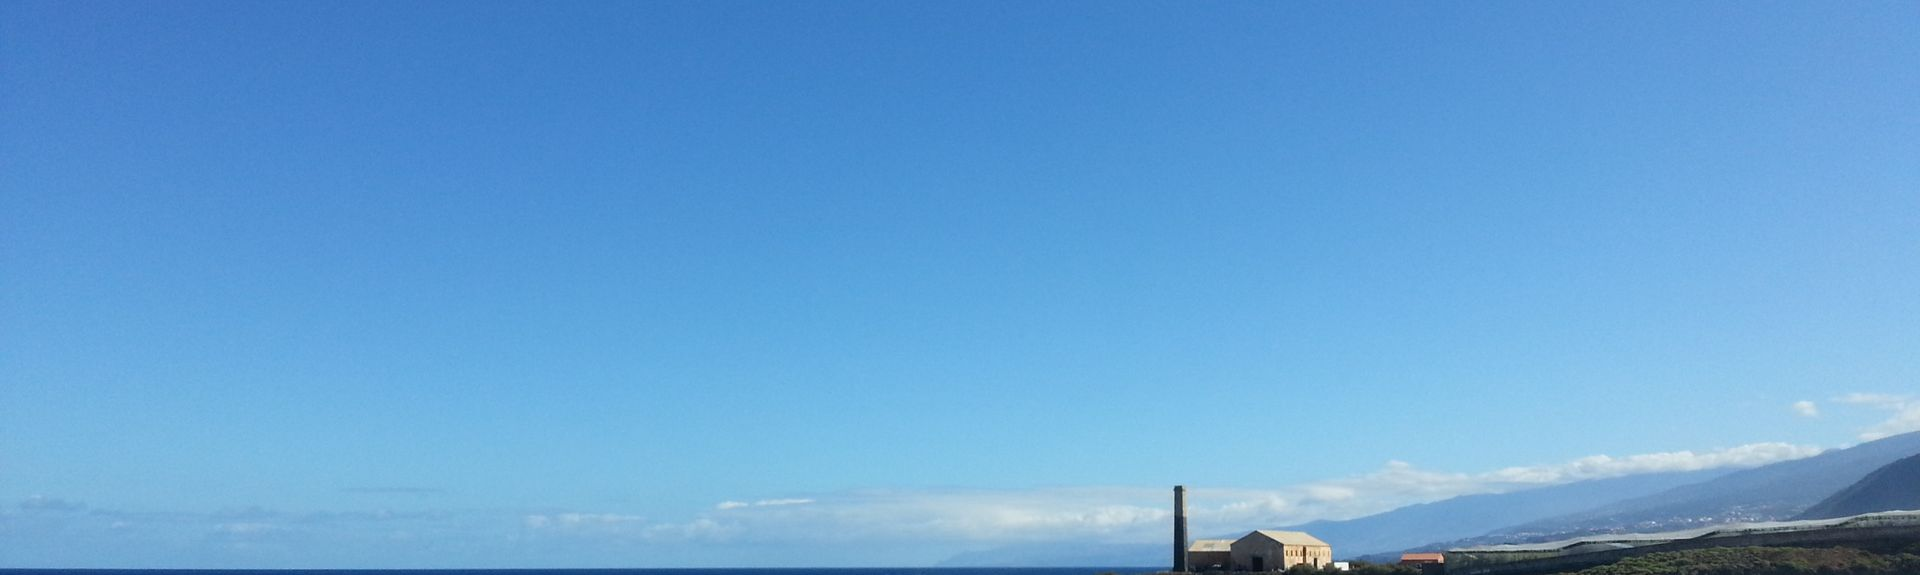 Icod de los Vinos, Canary Islands, Spain